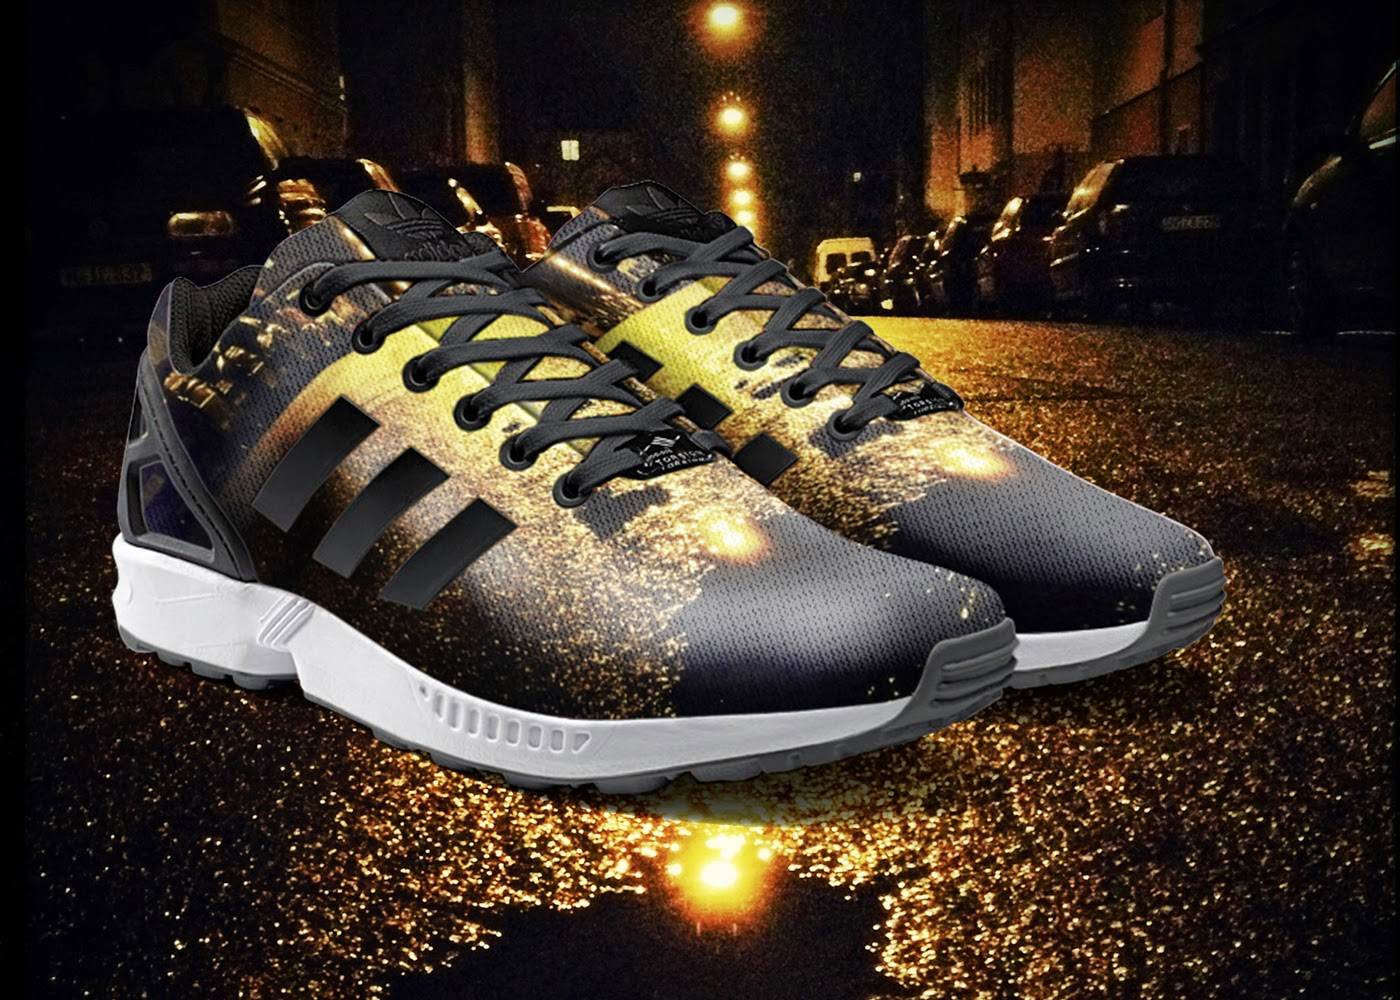 11-mi-Adidas-ZX-Flux-Shoe-App-to-Customise-your-Shoes-www-designstack-co